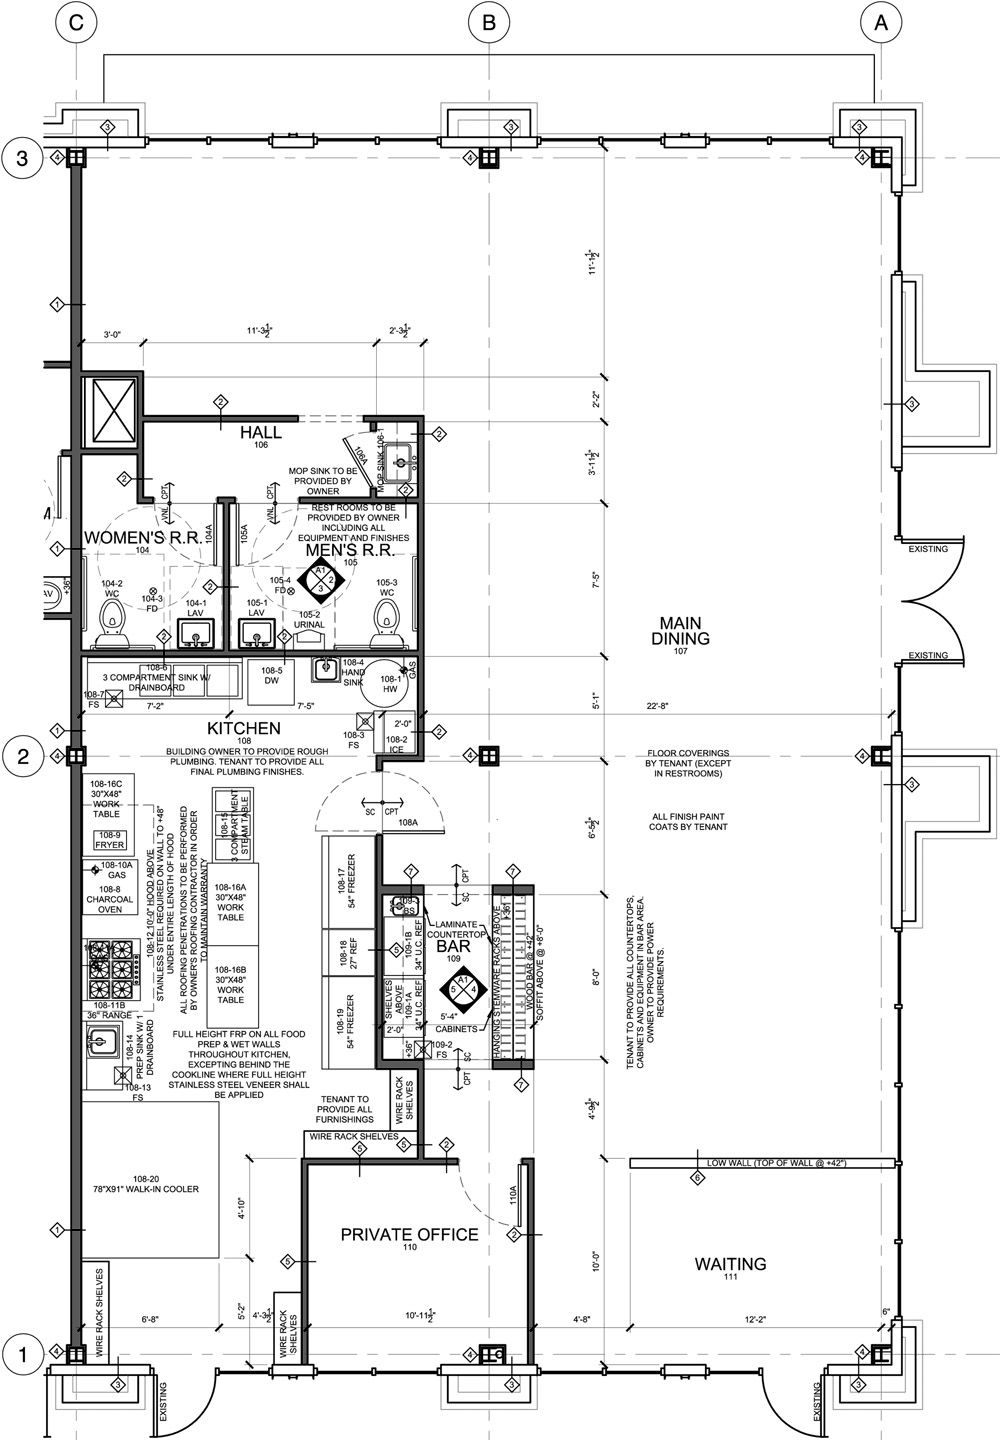 Restaurant kitchen design layout example - Designing A Restaurant Floor Plan Home Design And Decor Reviews